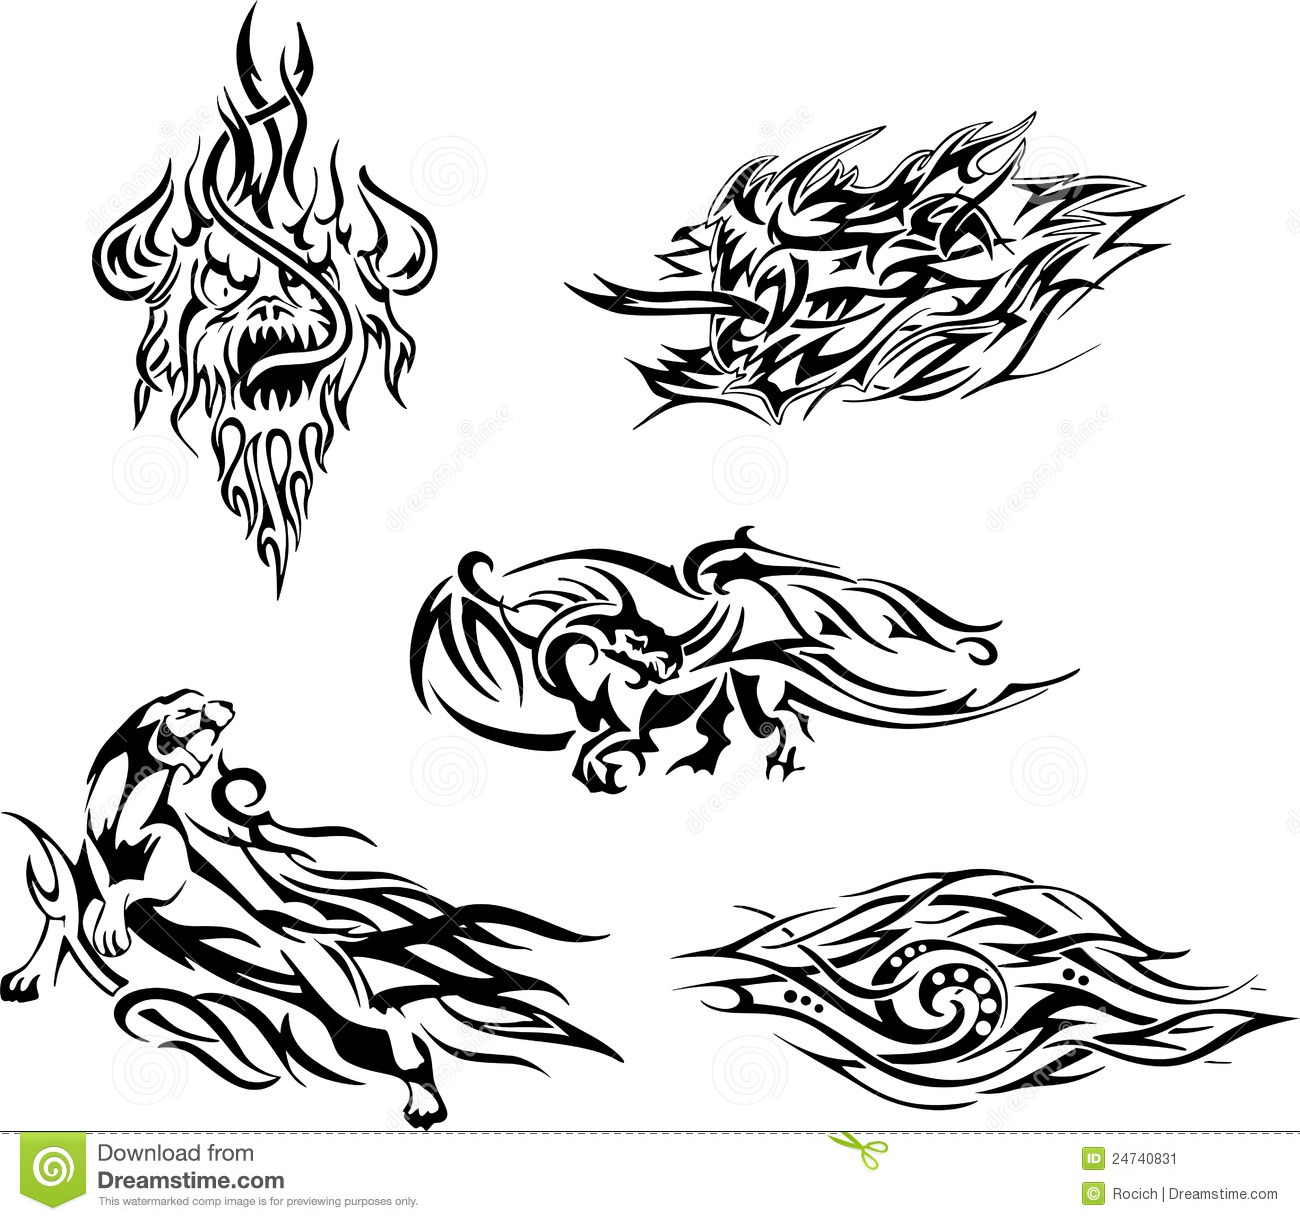 Flame tattoos. Set of black and white vector illustrations.